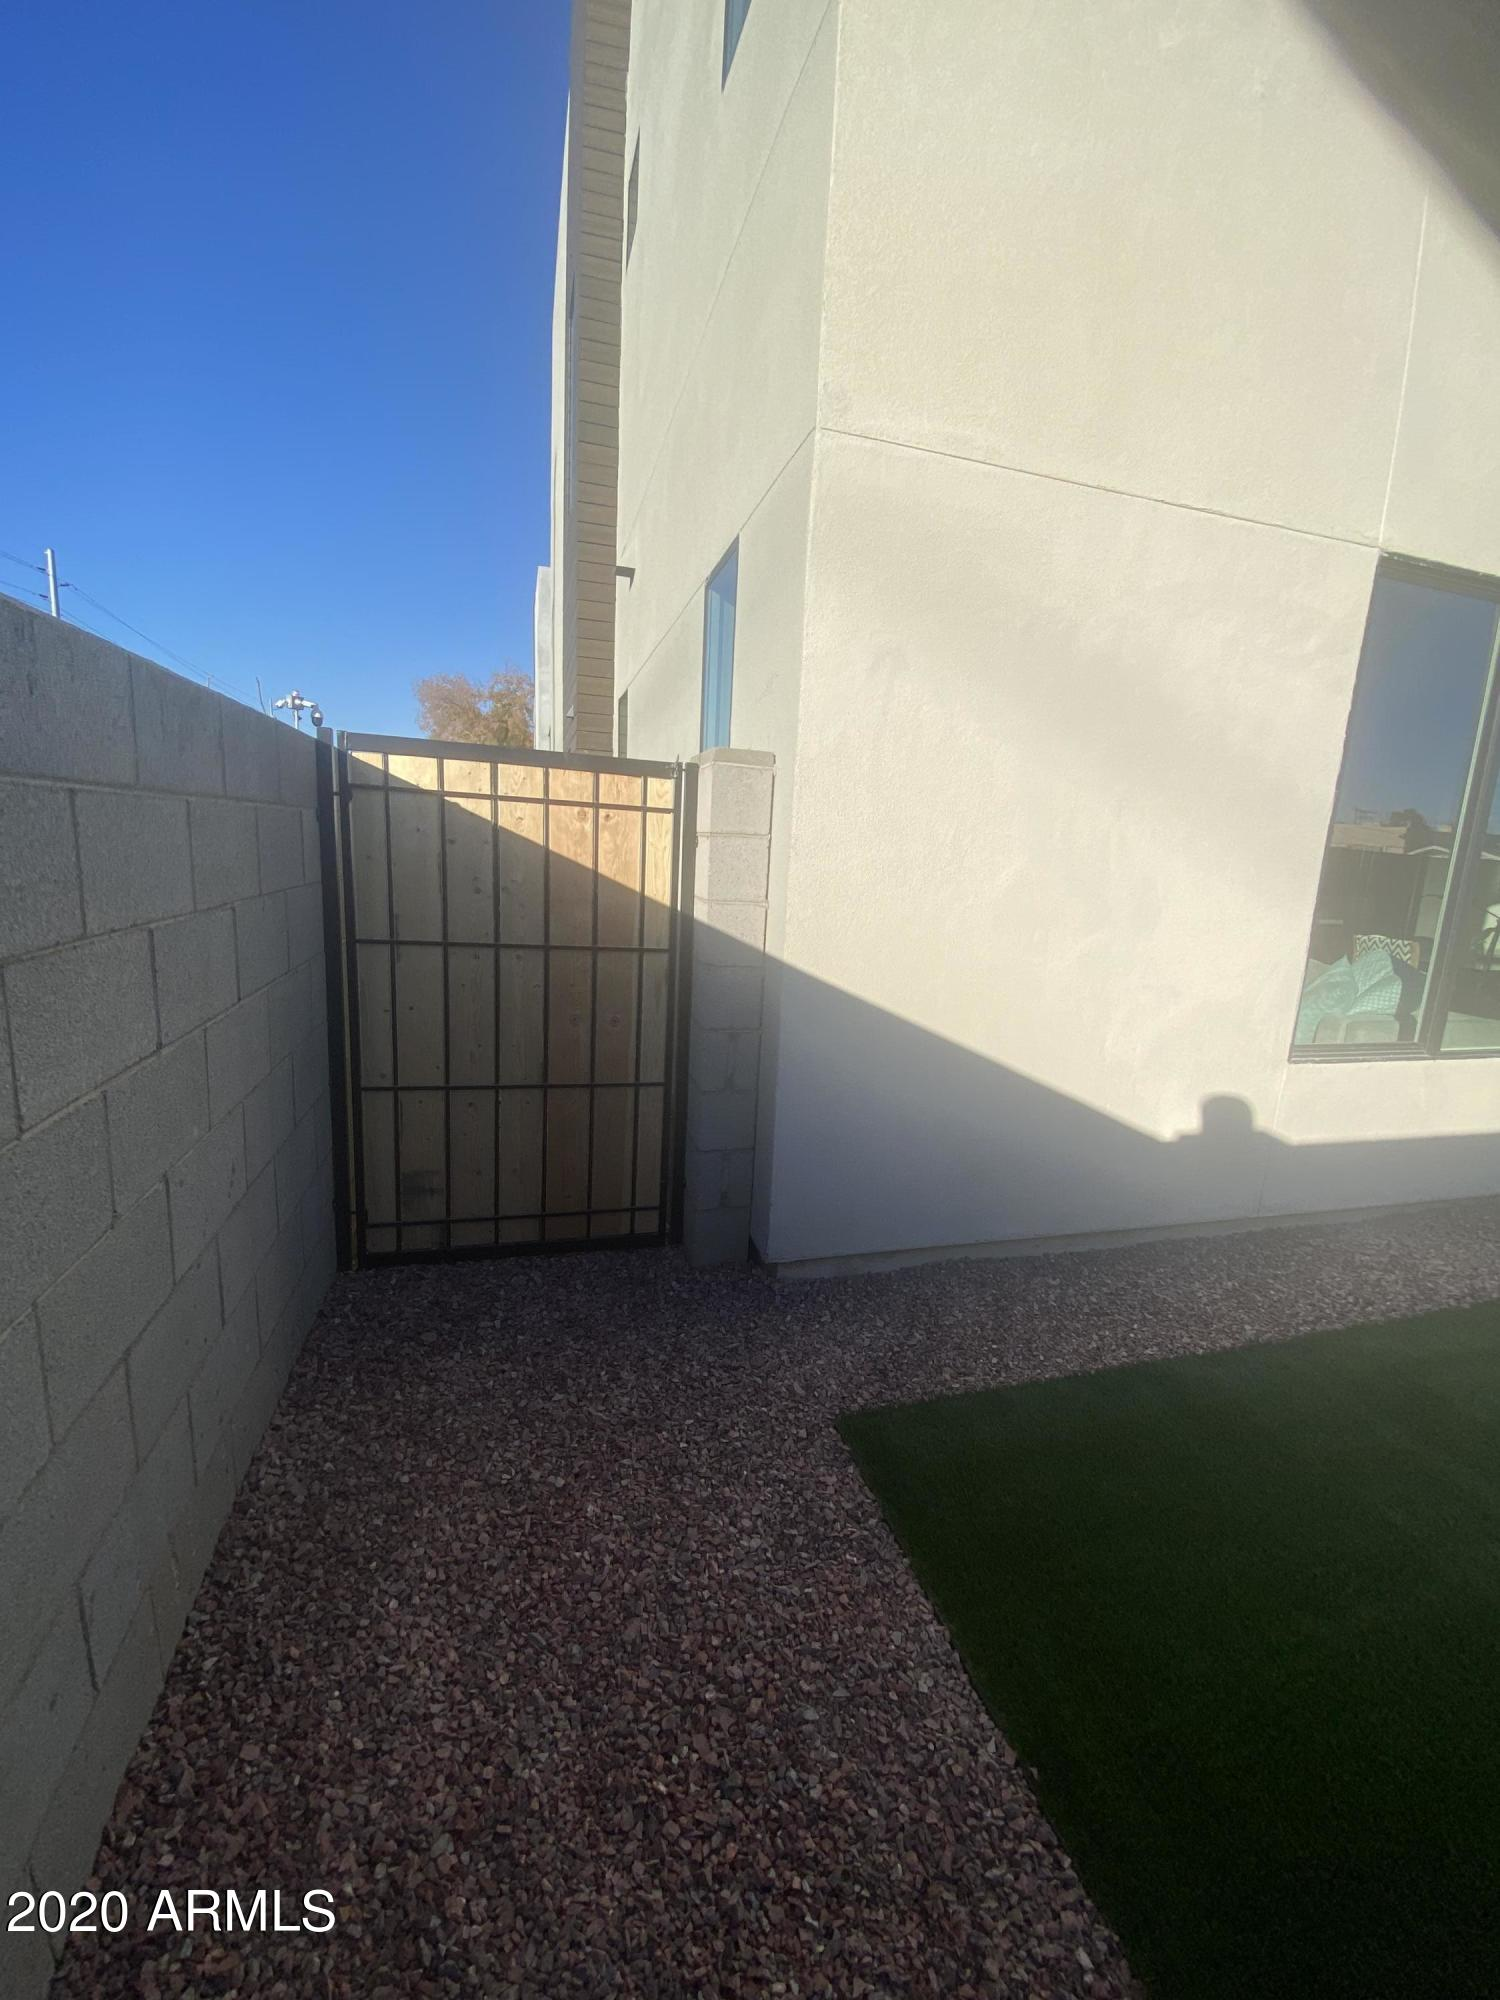 6301 12th Street, Phoenix, Arizona 85016, 3 Bedrooms Bedrooms, ,2.5 BathroomsBathrooms,Residential,For Sale,12th,6182784